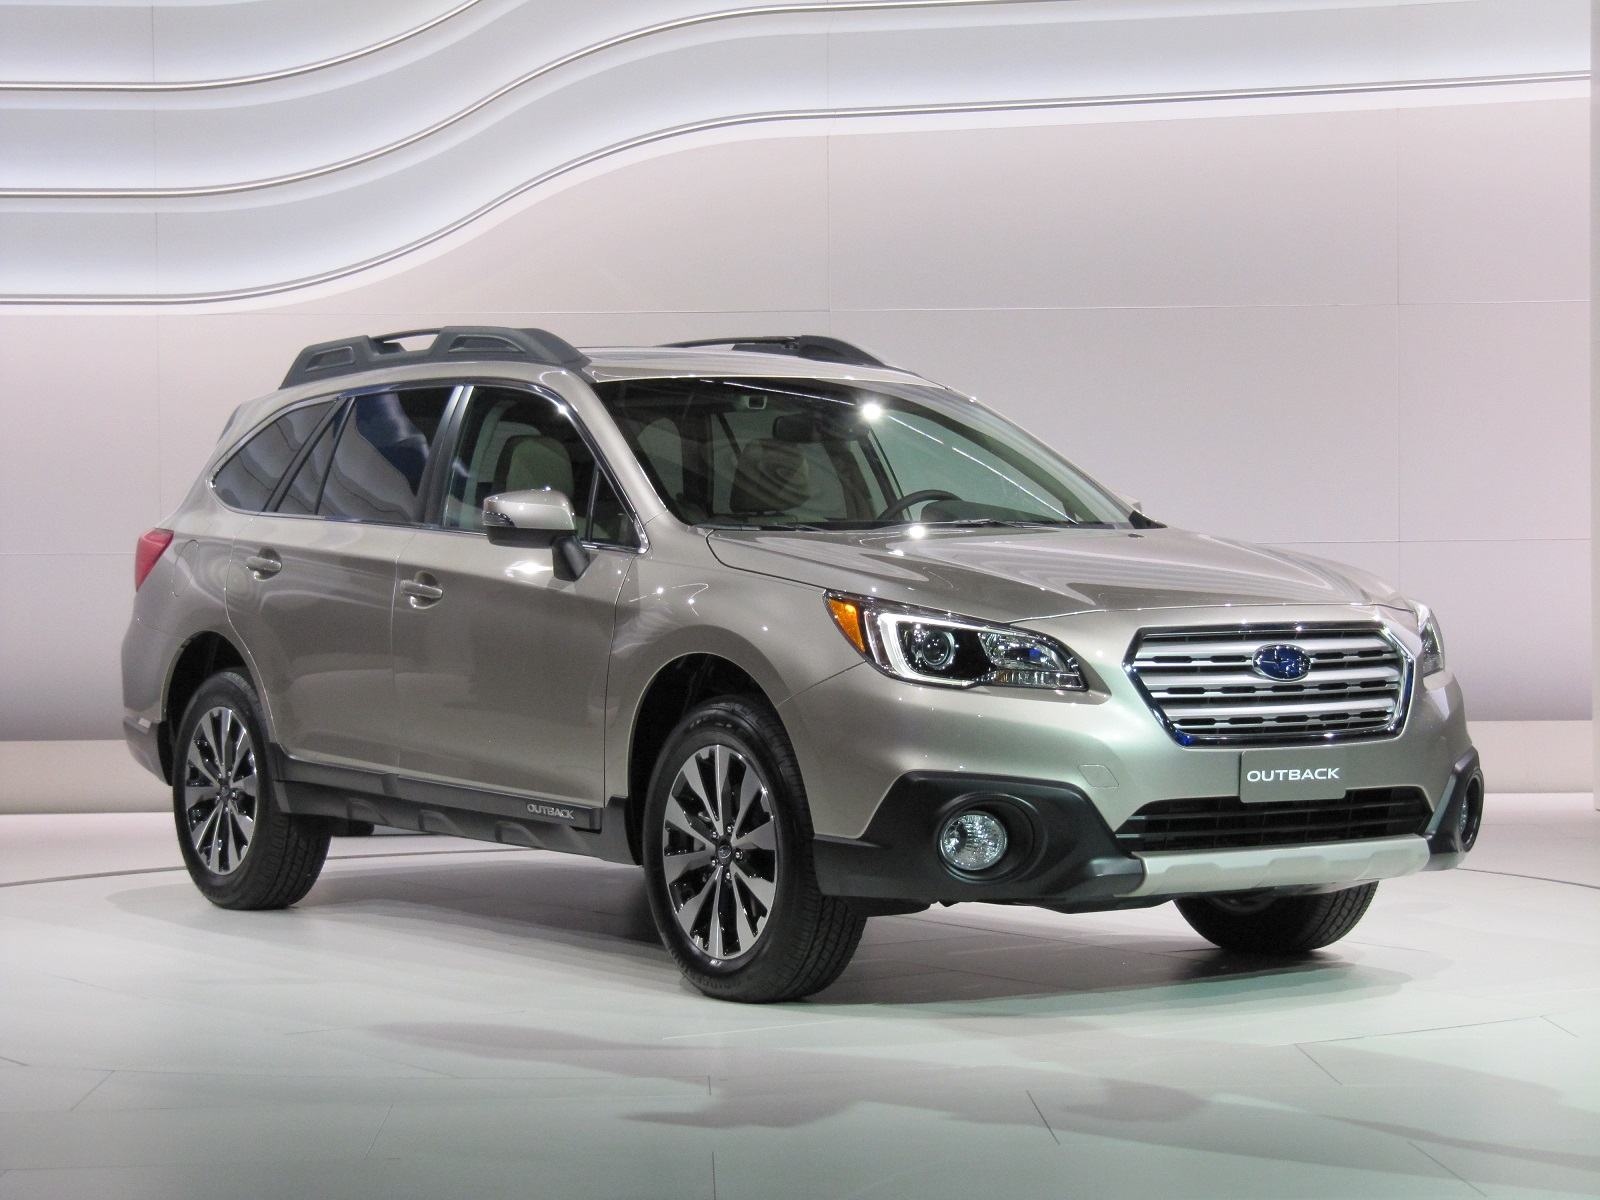 2015-subaru-outback-introduction-at-2014-new-york-auto-show_100464662 ...